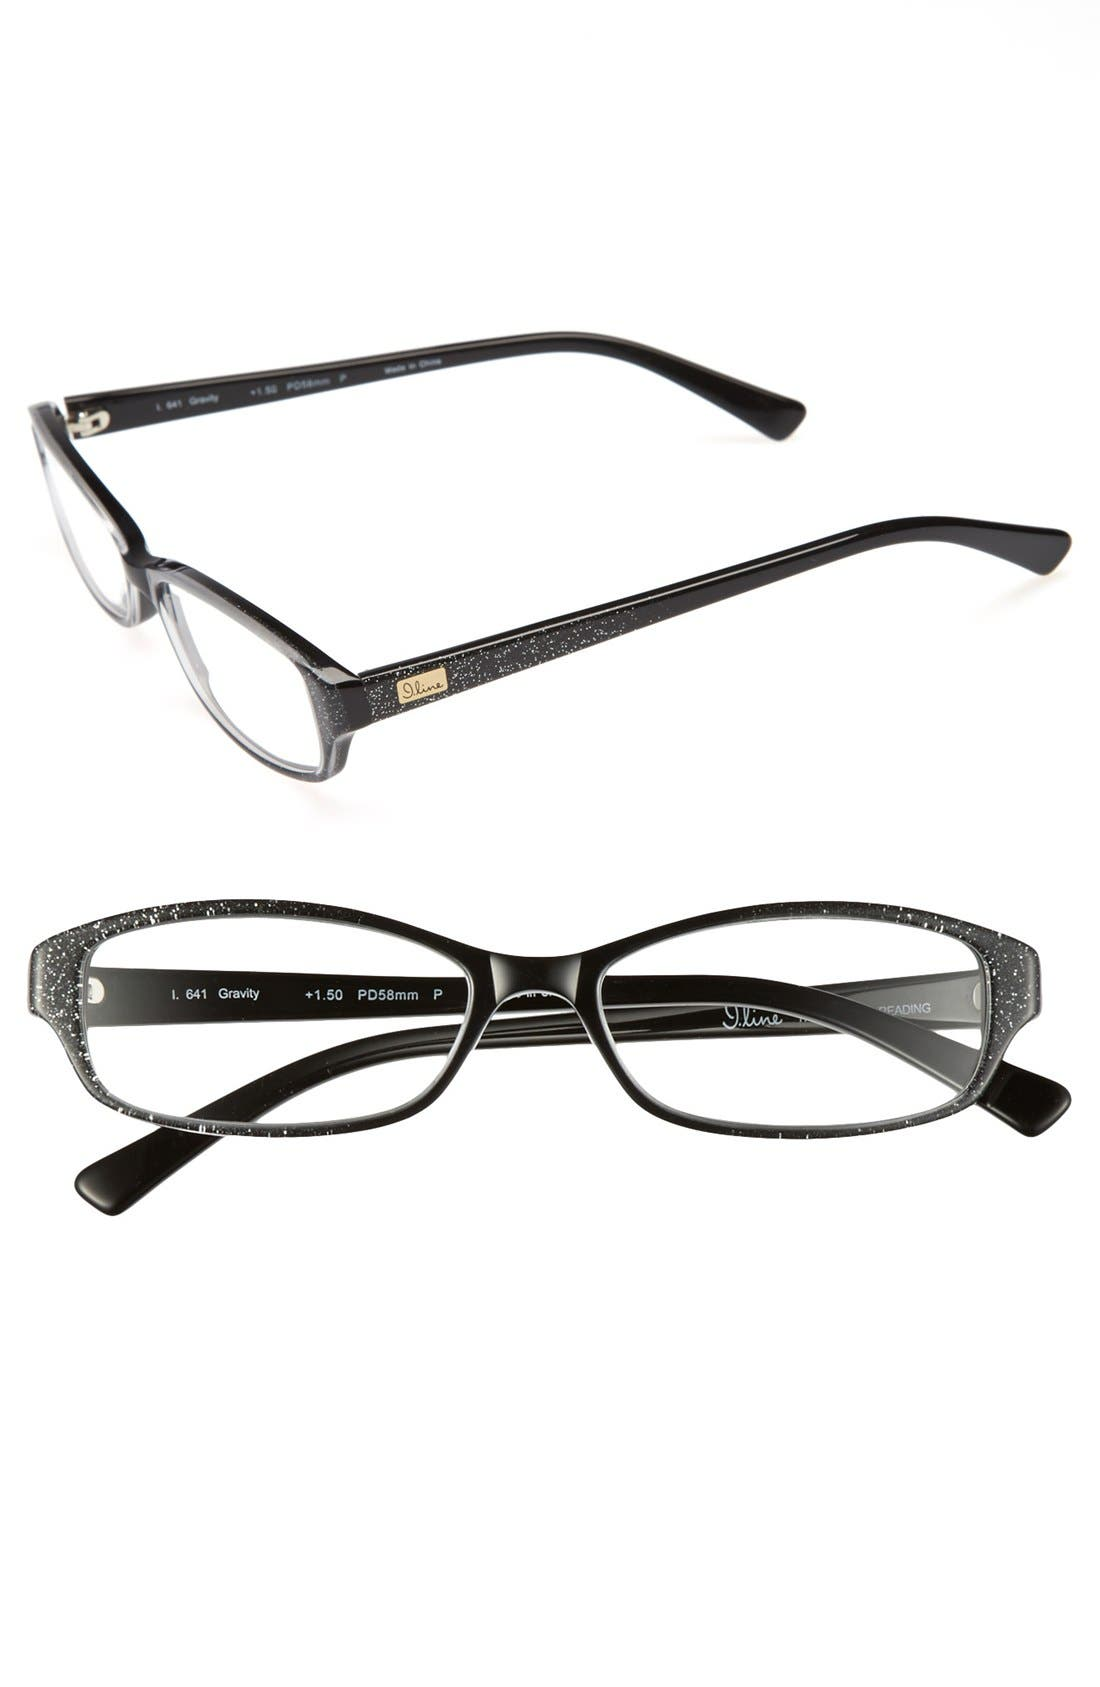 Main Image - I Line Eyewear 'Gravity' 58mm Reading Glasses (2 for $88)